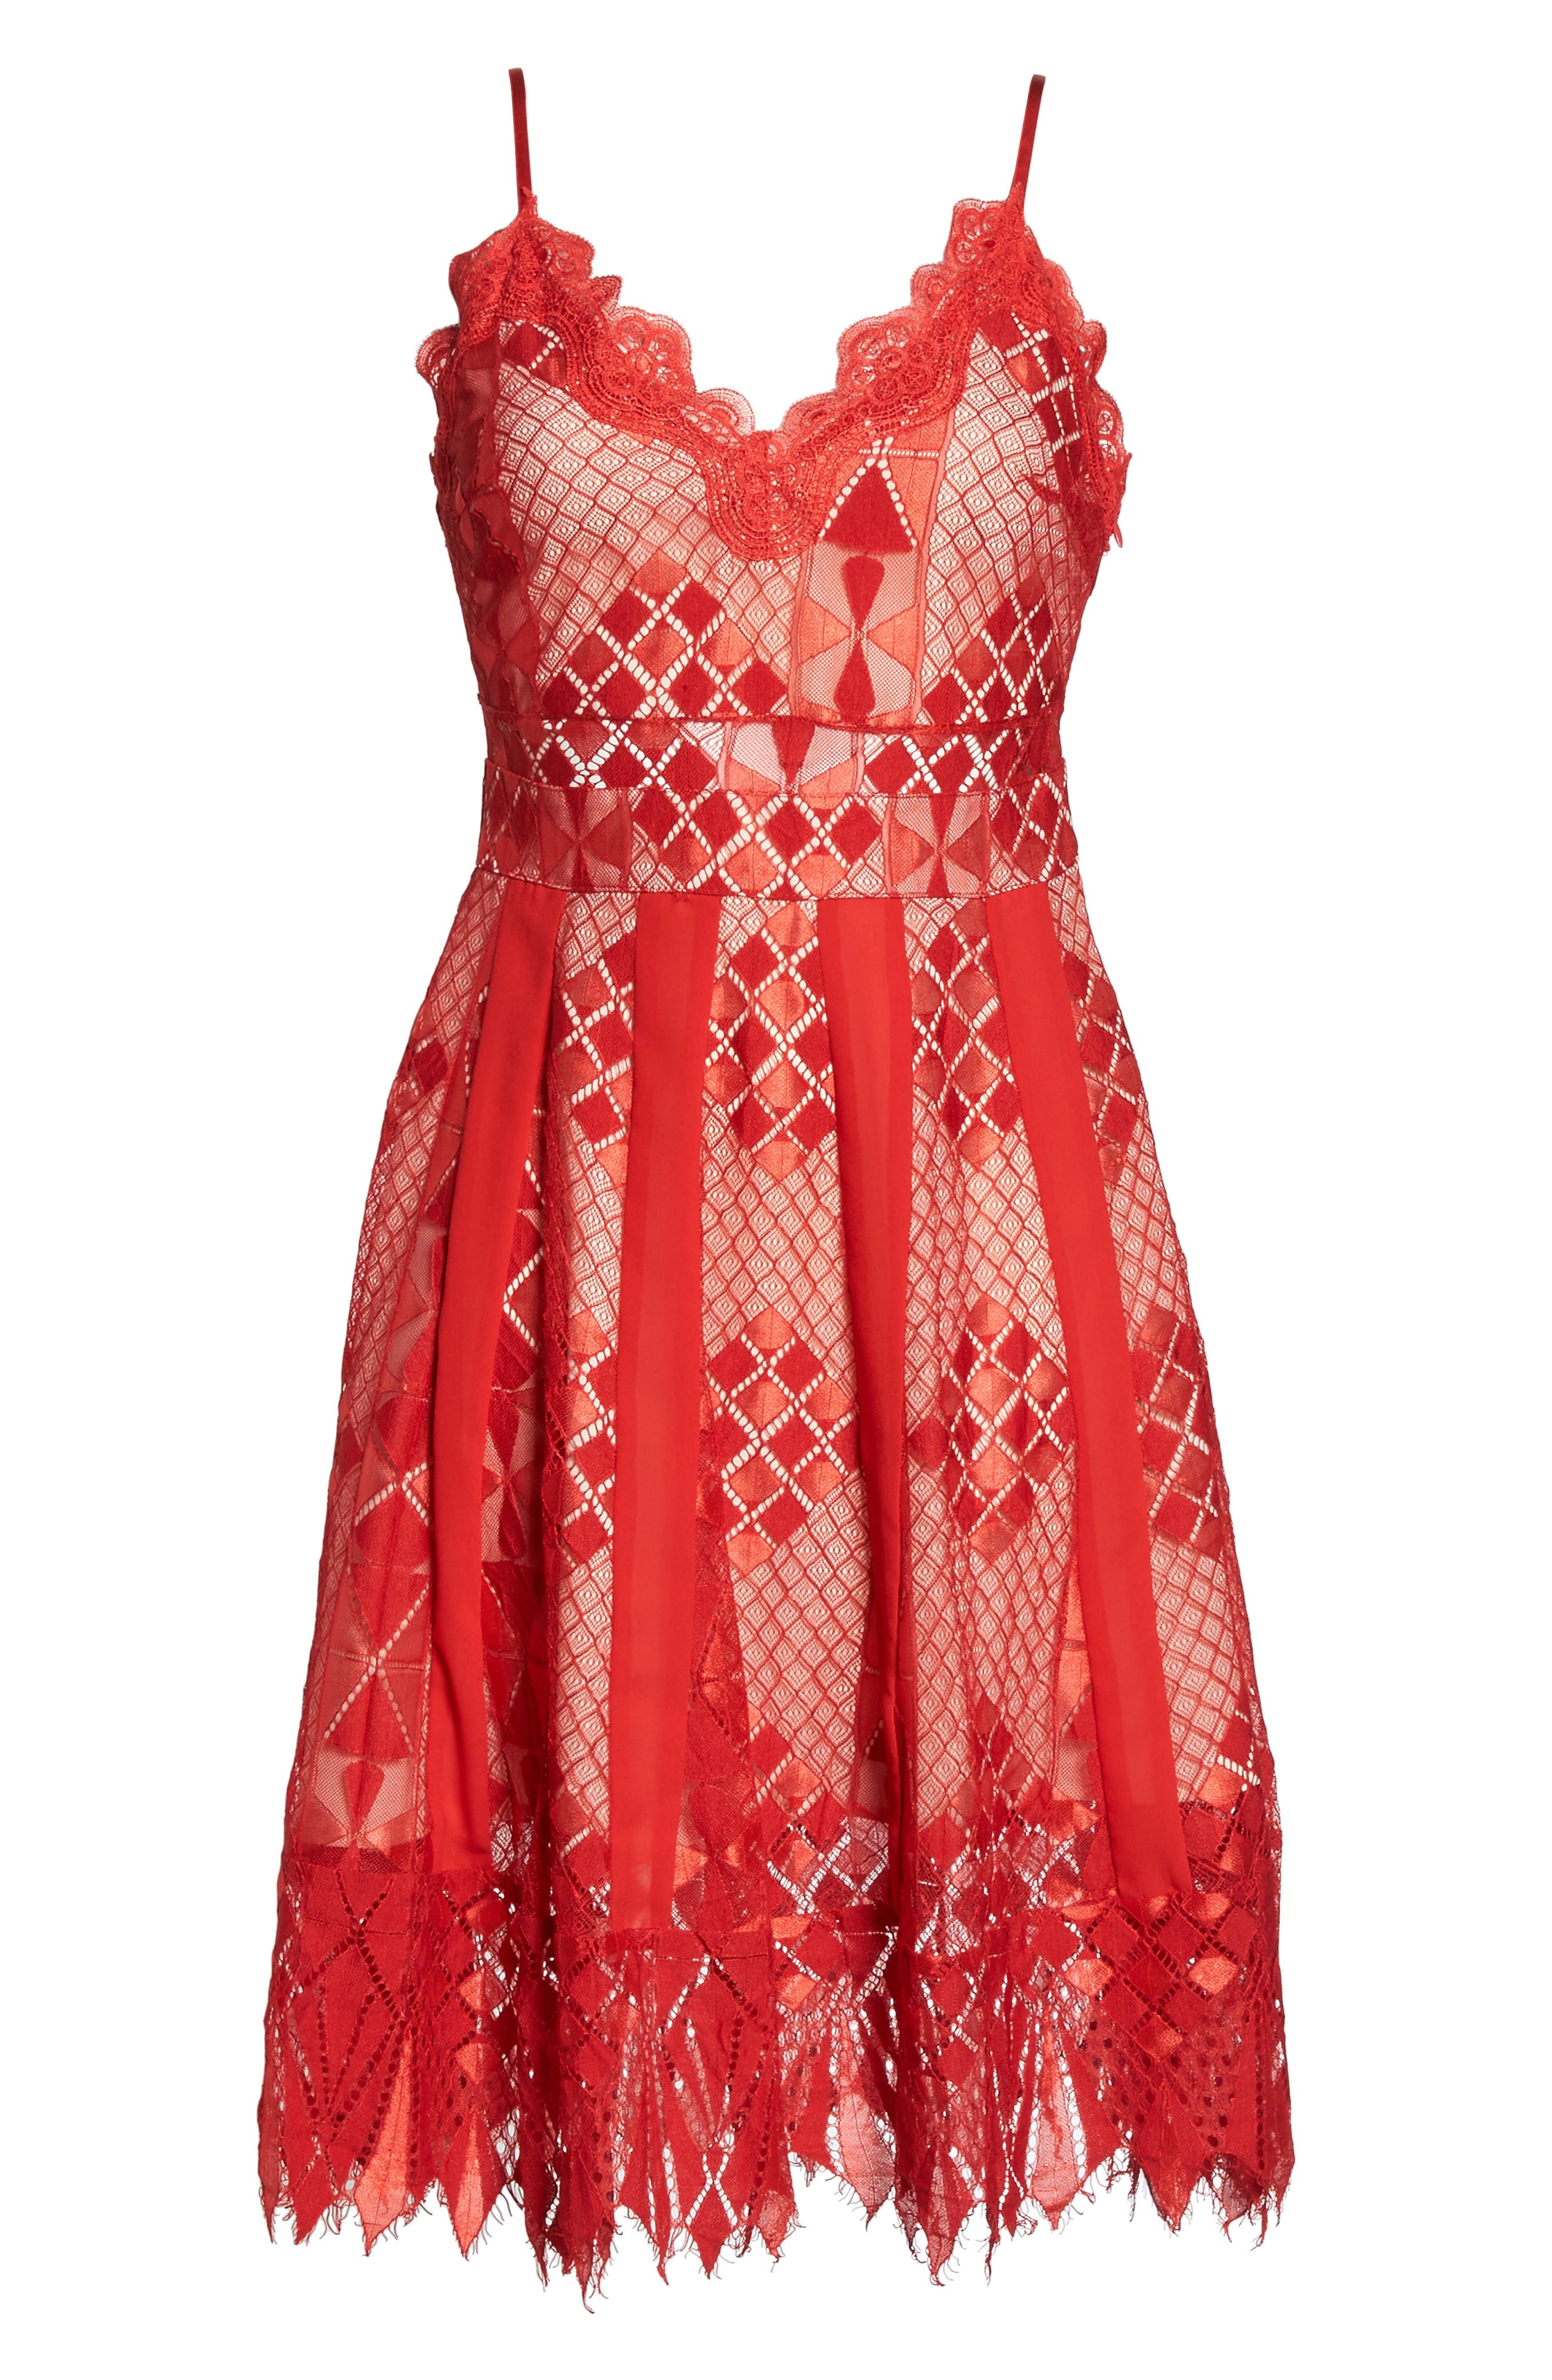 Calla Geometric Lace Dress,                             Alternate thumbnail 6, color,                             Red